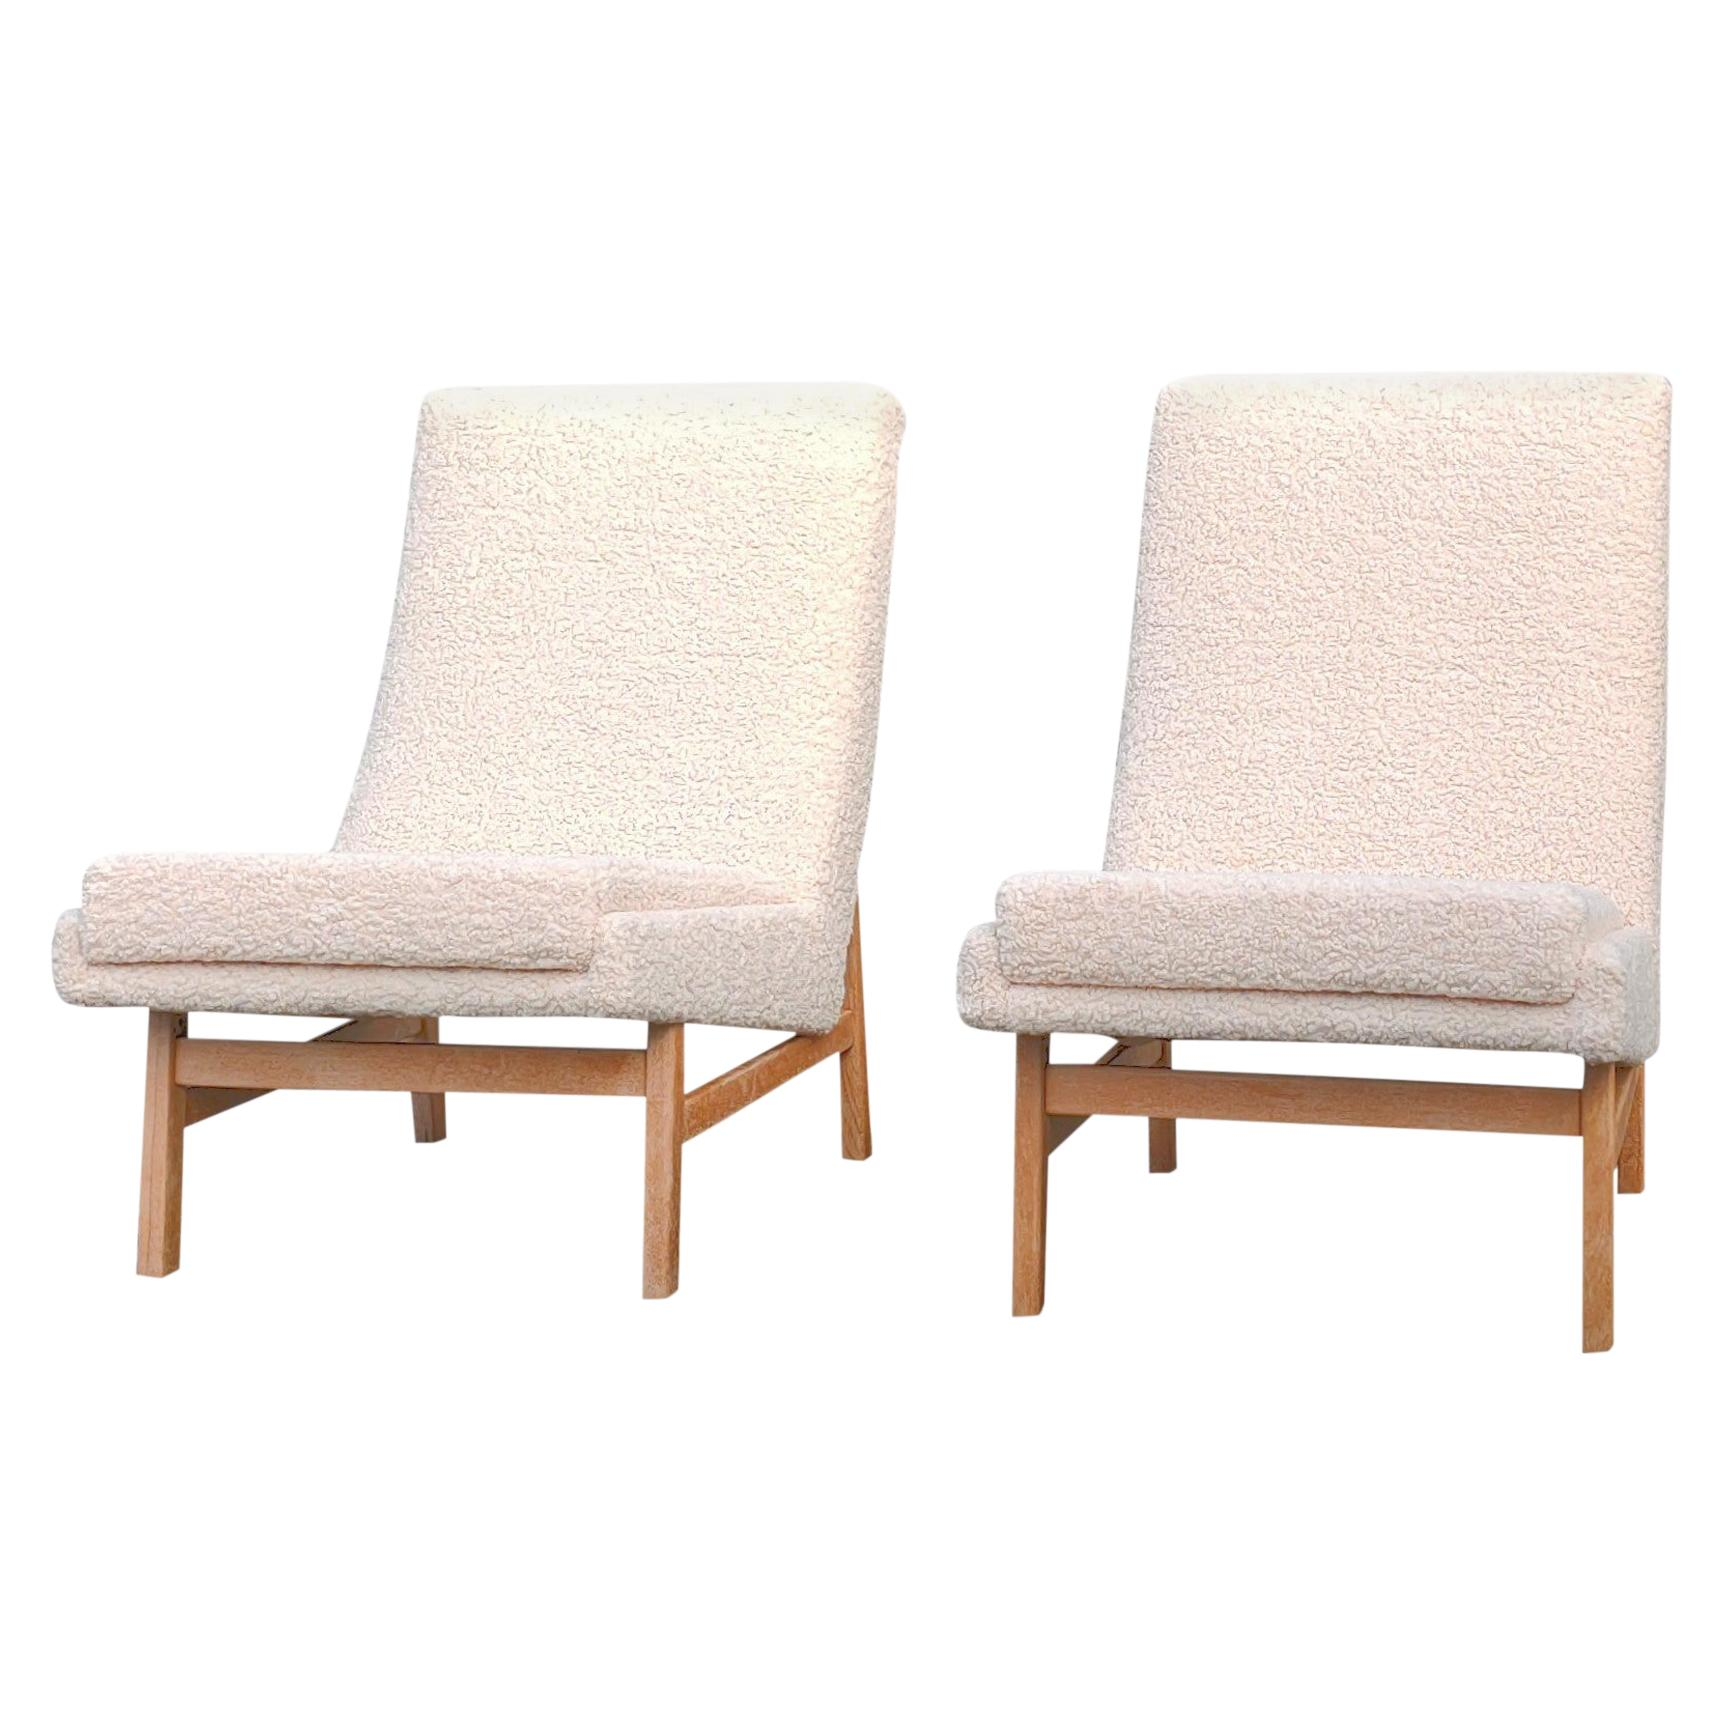 Pair of Cream White Chairs by Guariche, Mortier & Motte for ARP, France, 1955